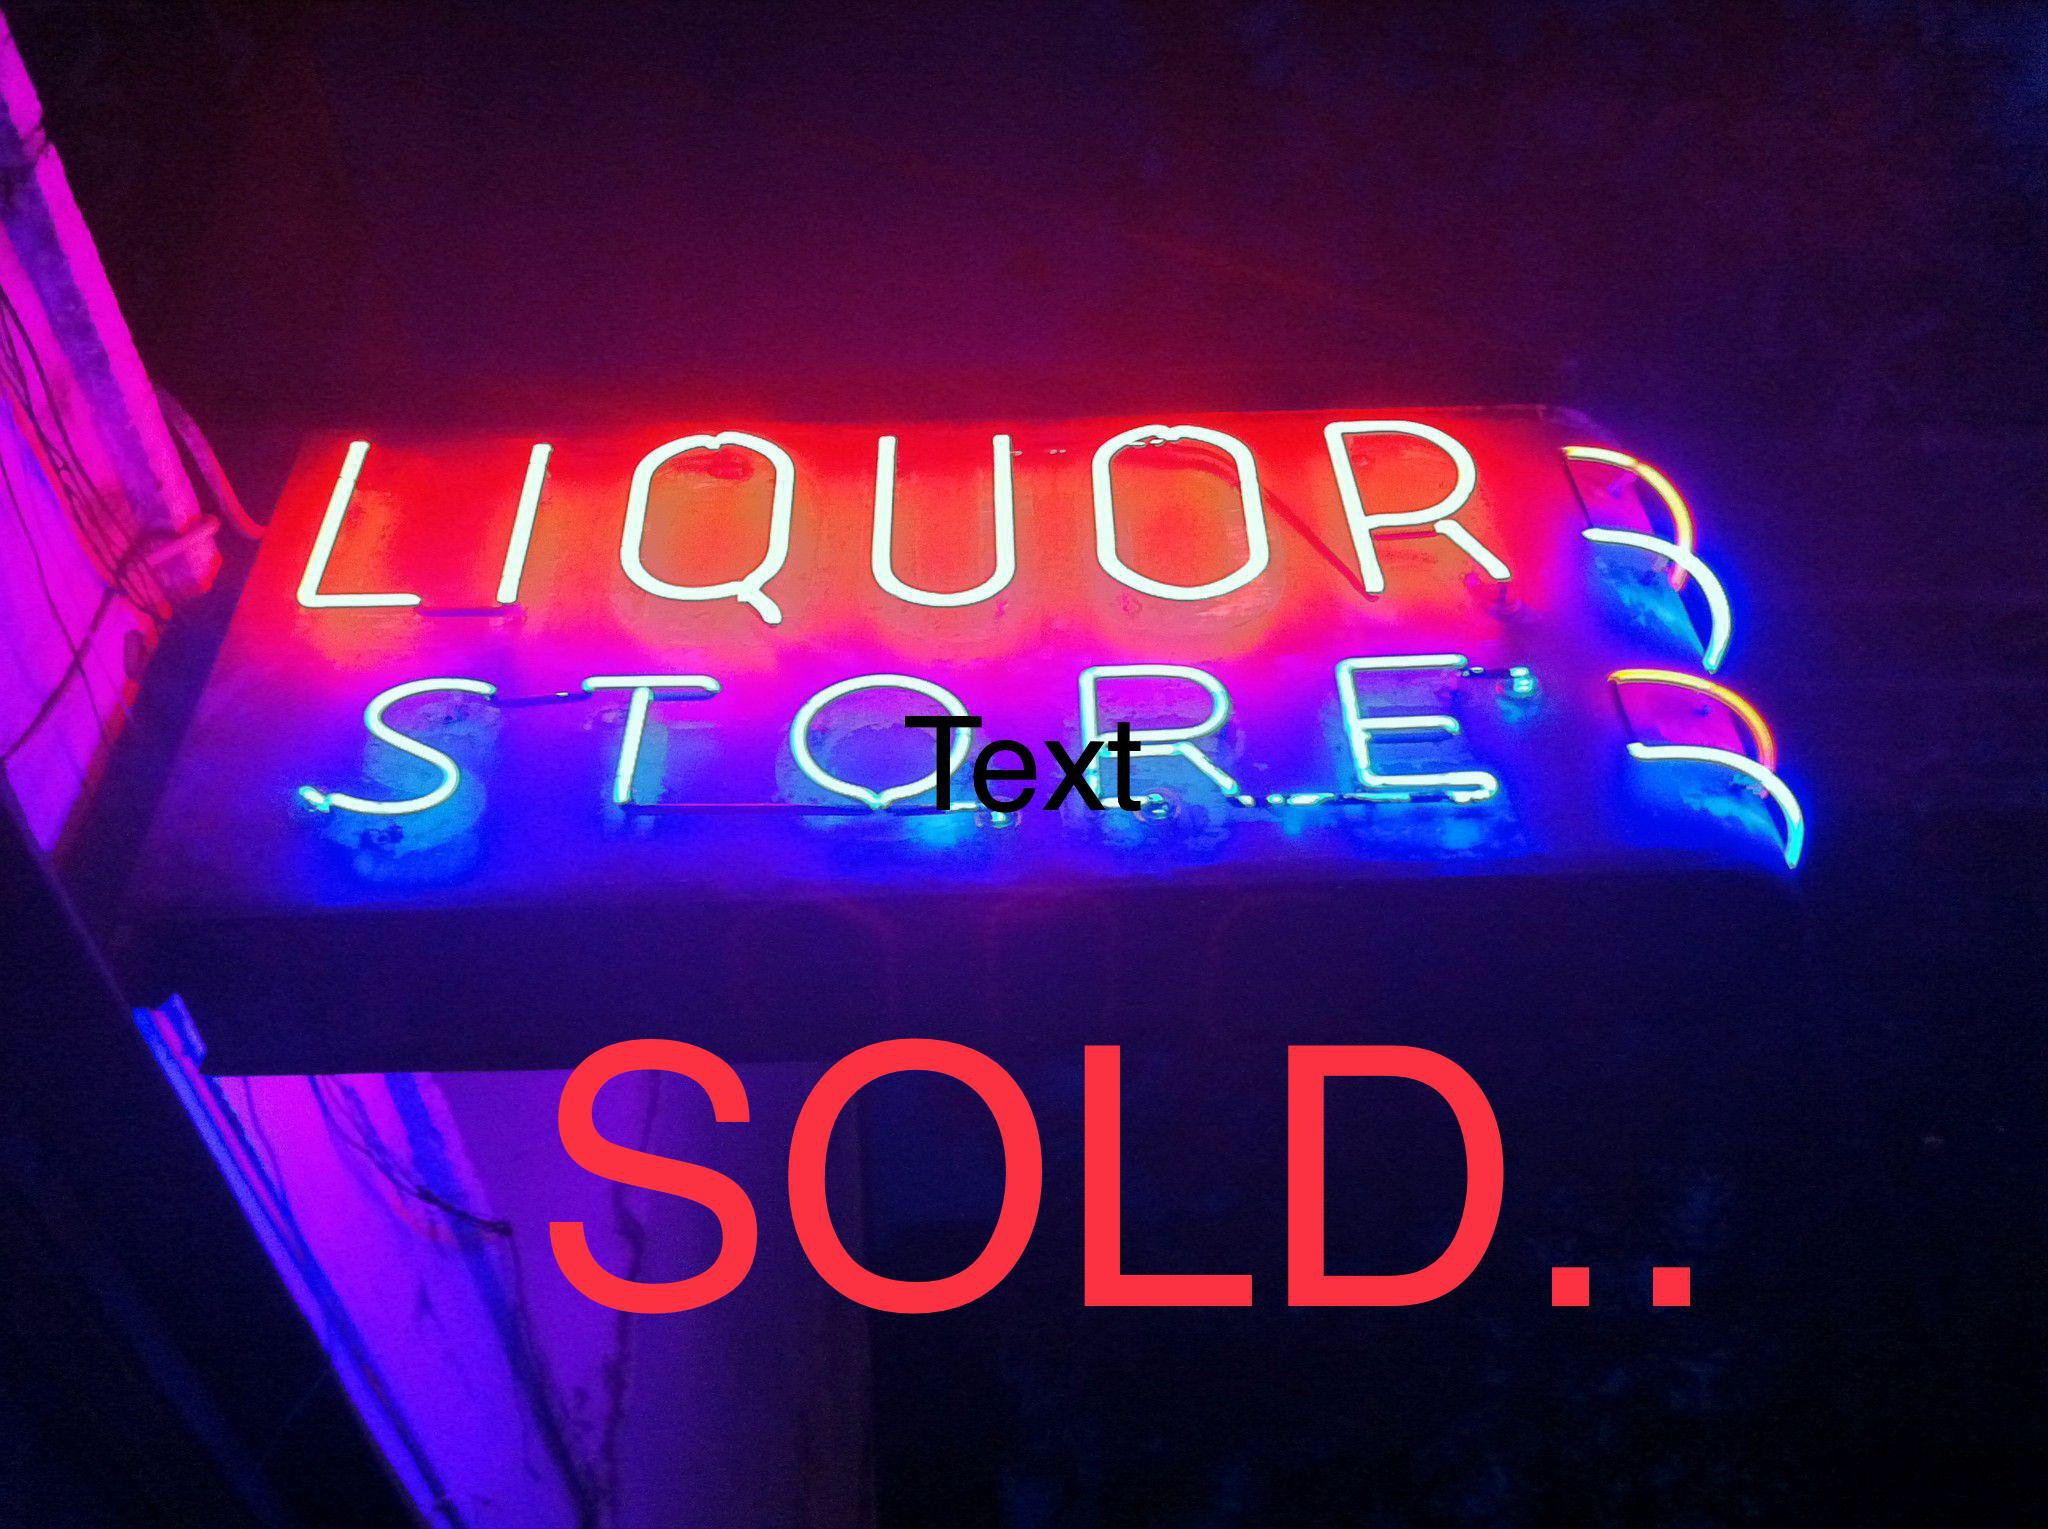 Main Photo: 363 Tranquille rd - Liquor store with Property in Kamloop: Business with Property for sale